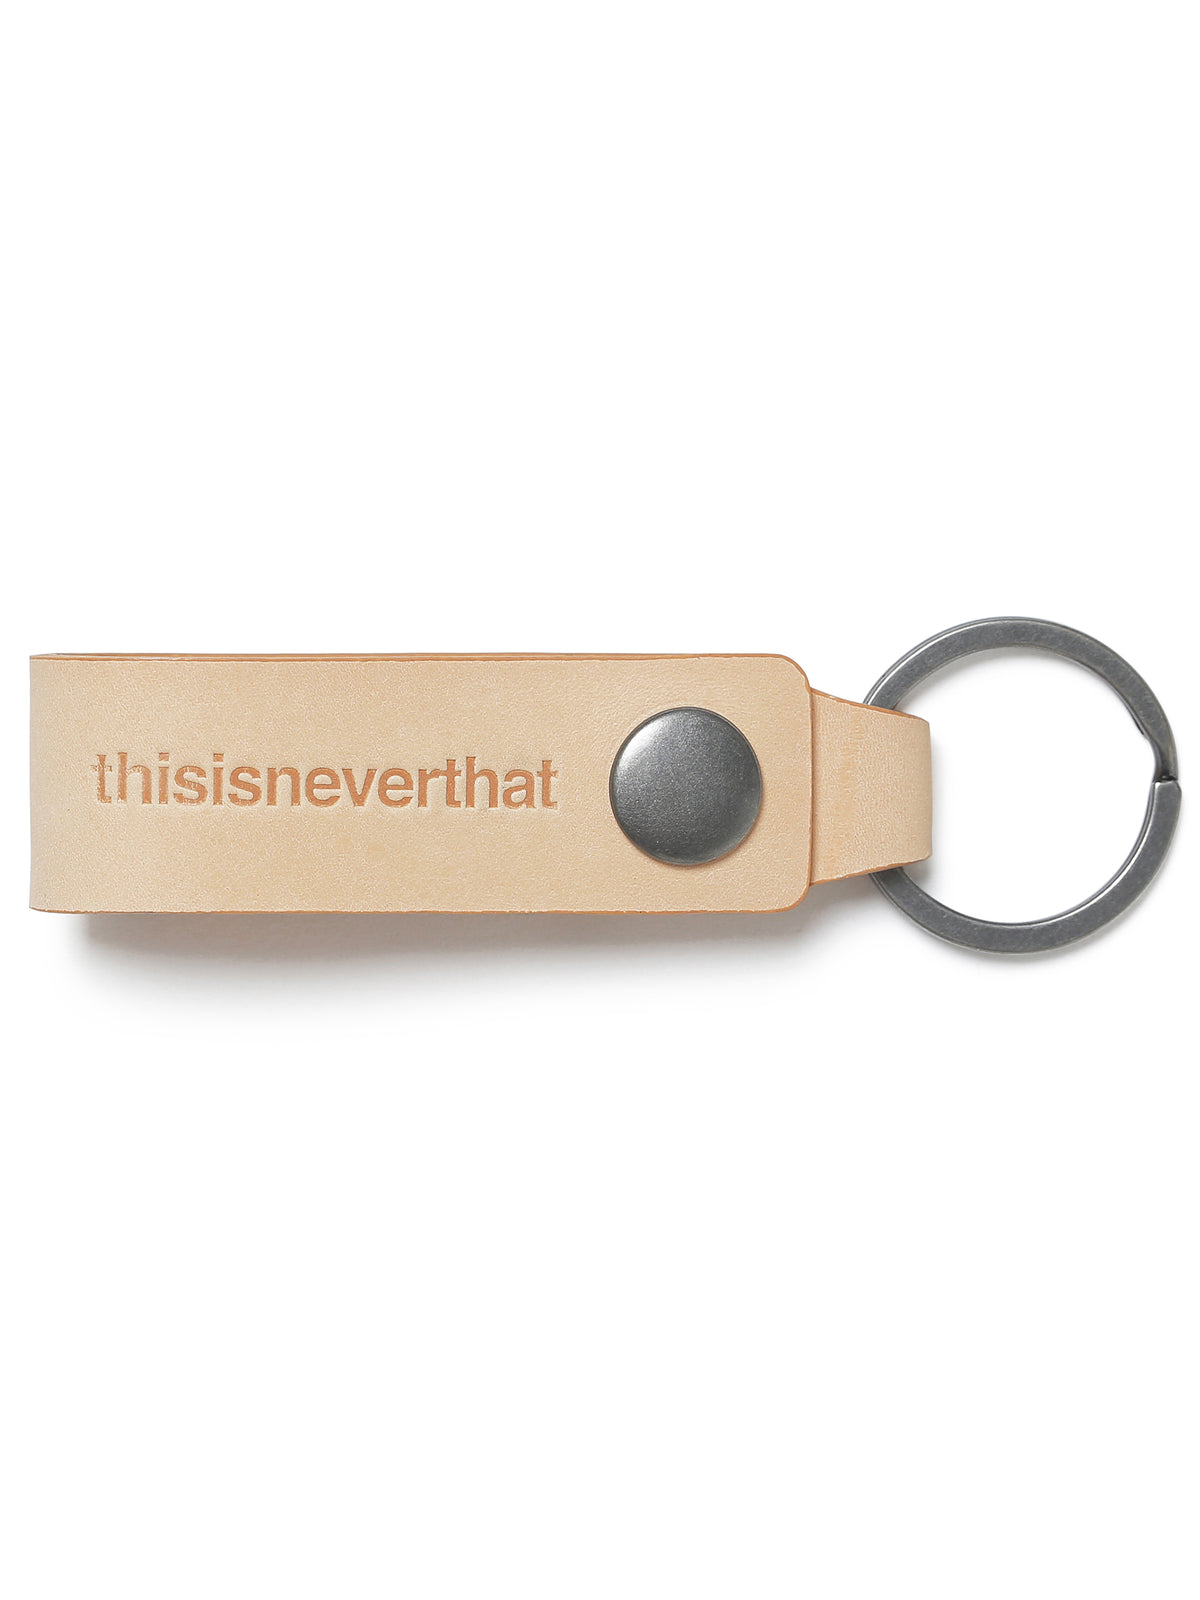 Leather Key Ring - thisisneverthat